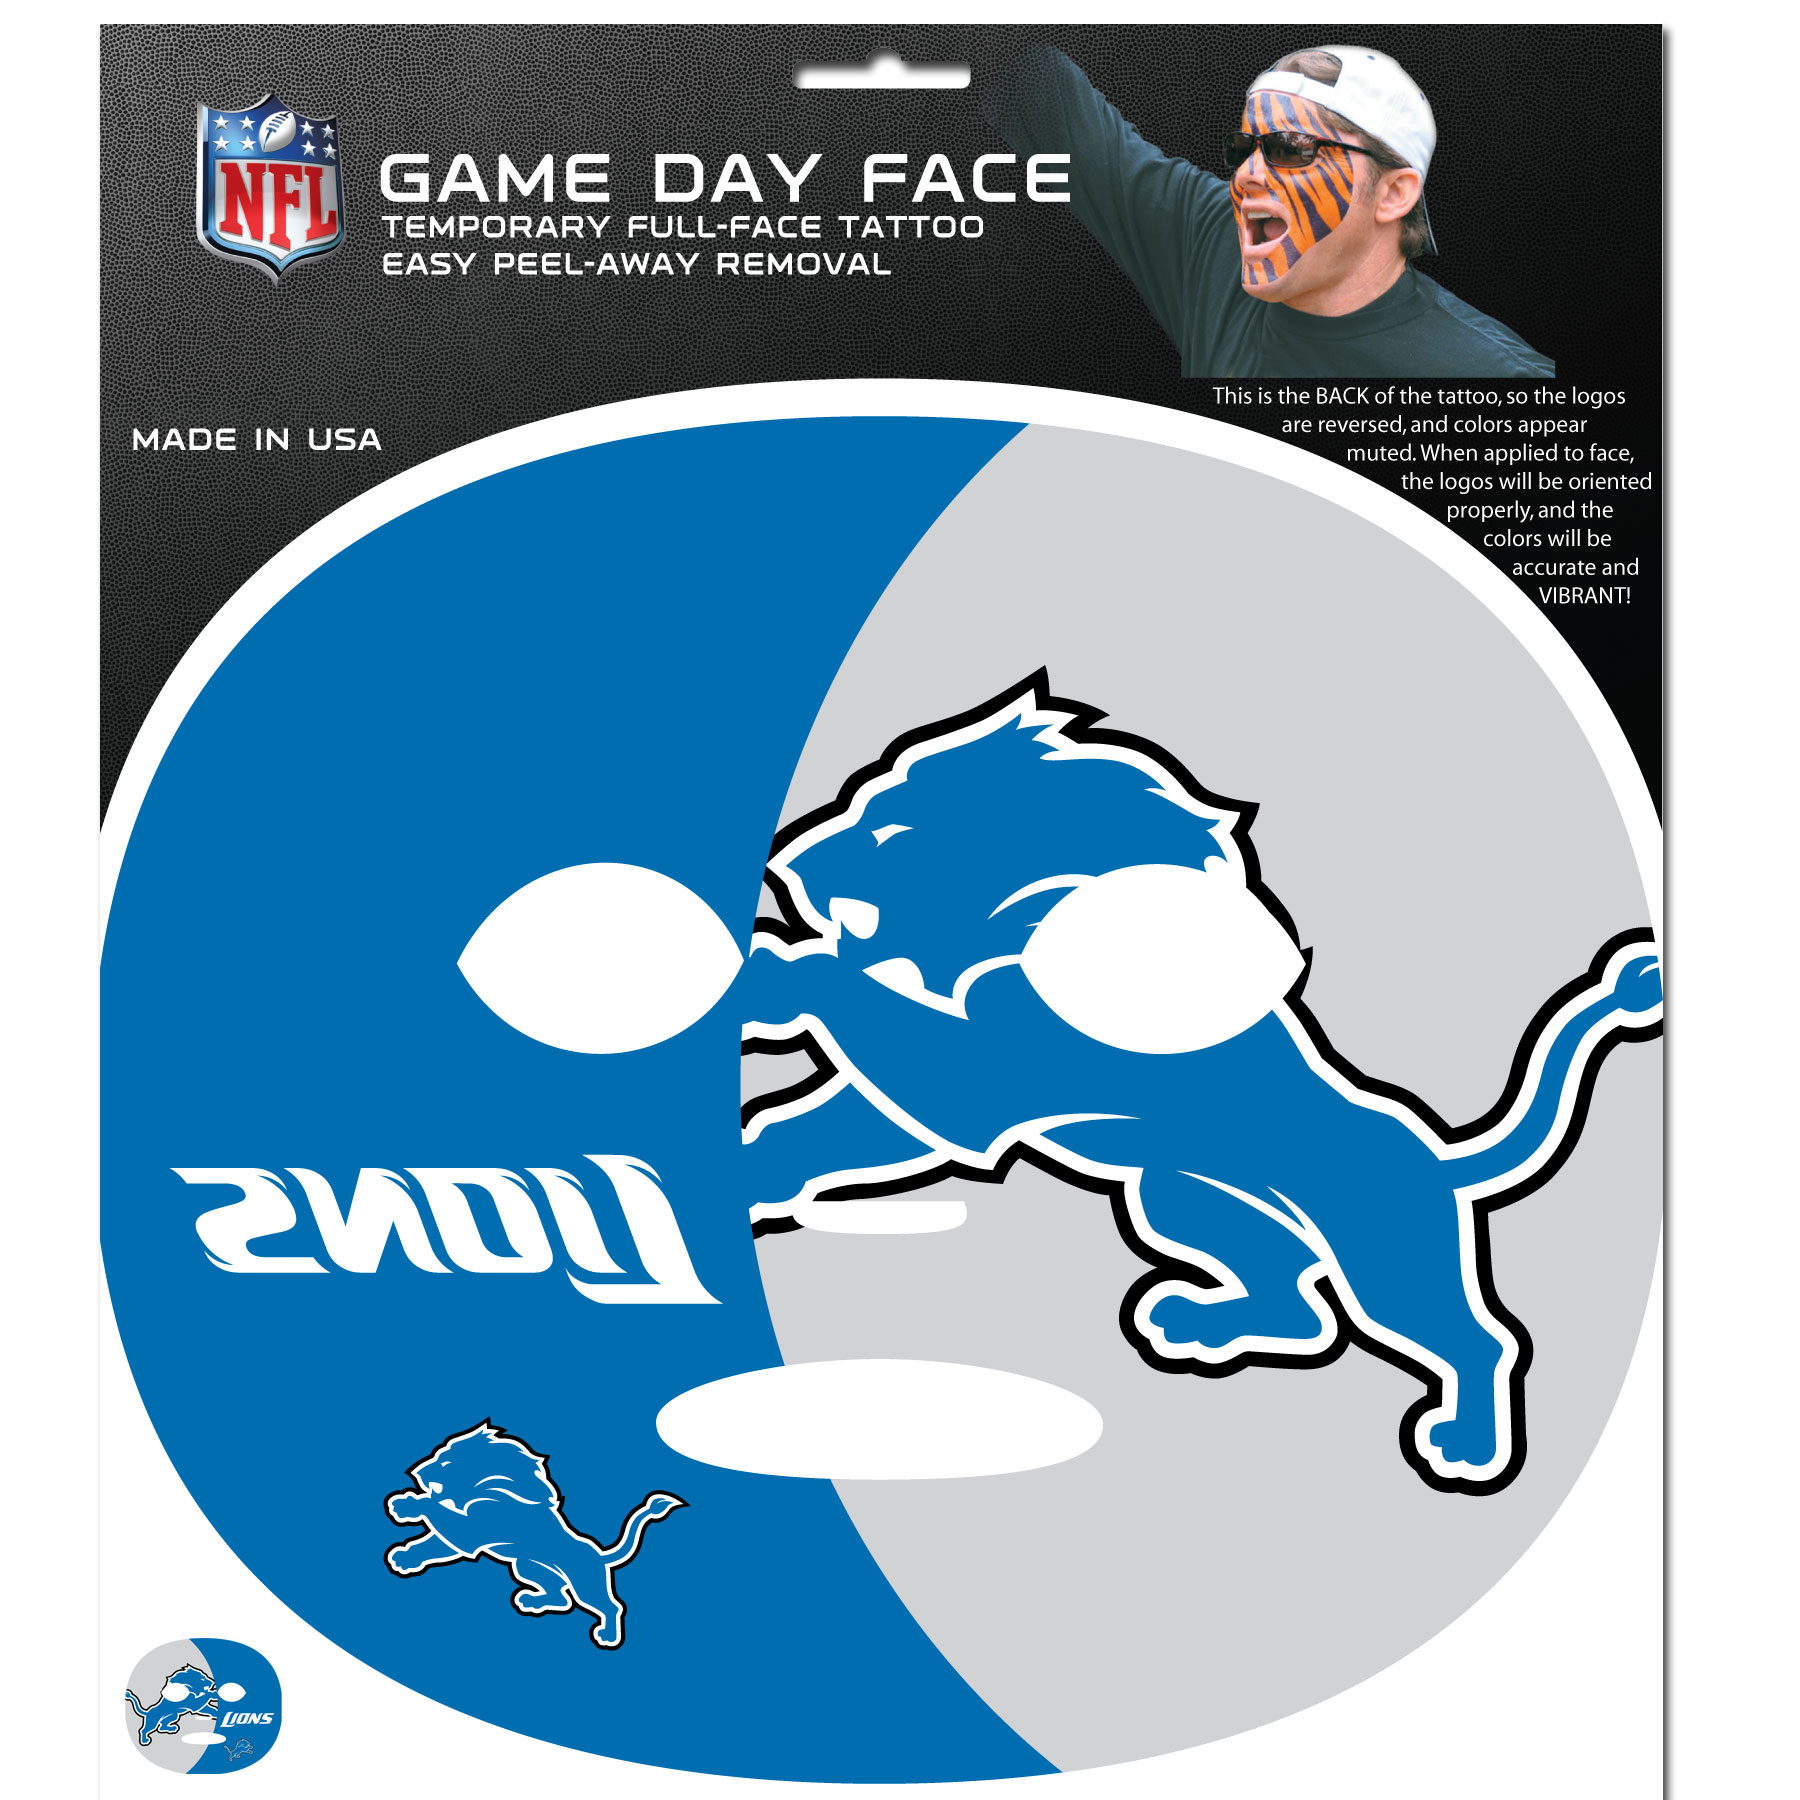 Detroit Lions Set of 8 Game Day Faces - No better way to show your team pride than by painting your face. Siskiyou's Game Day Face Temporary Tattoo isn't your typical face paint. It is a water based application that doesn't smudge, smear or sweat off while you're wearing it and easily peels off after you're done celebrating your team's big Win! The temporary tattoo is large enough to trim down to fit your face. Our Game Day Face Temporary Tattoo's are fun for fans of all ages. You may have seen our product before, these are the same Temporary Face Tattoos as pitched on ABC's Shark Tank.